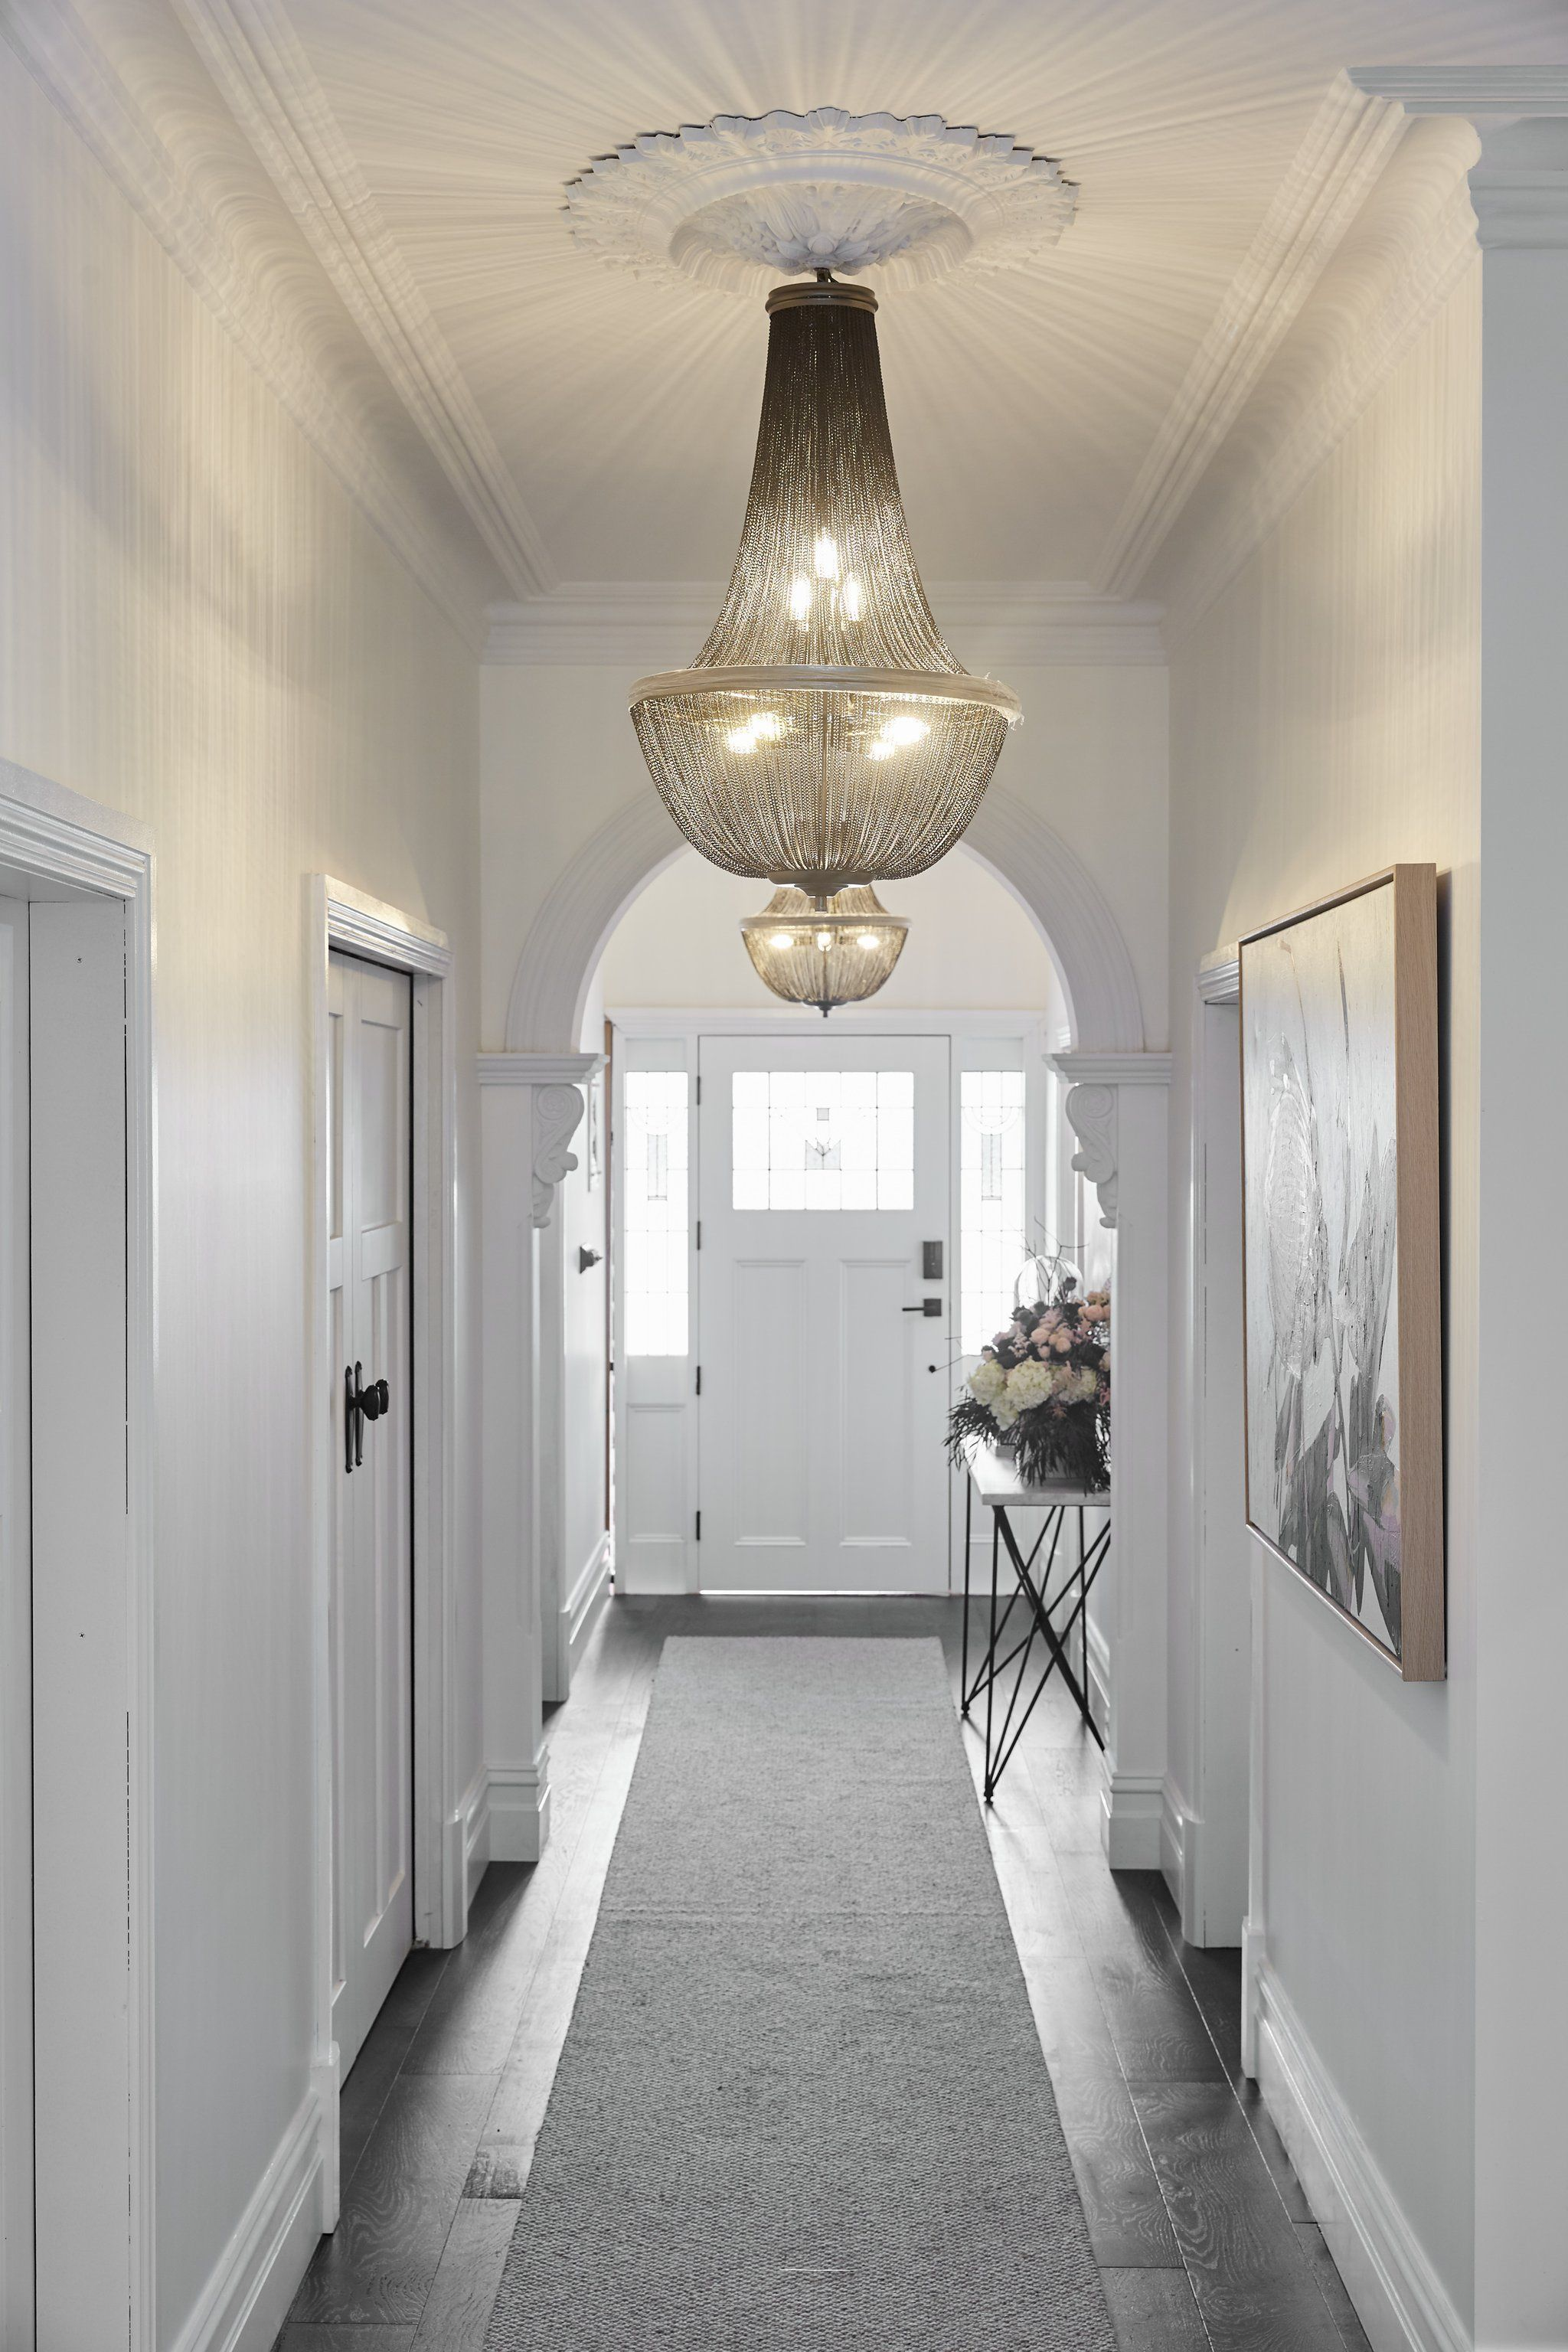 8+ Dazzling Hallway Lighting Ideas that'll Impress You ... on small entry lighting ideas, narrow landscape ideas, narrow hallway mirrors, narrow hallway wall decoration, powder room lighting ideas, narrow kitchen ideas, narrow living room seating ideas,